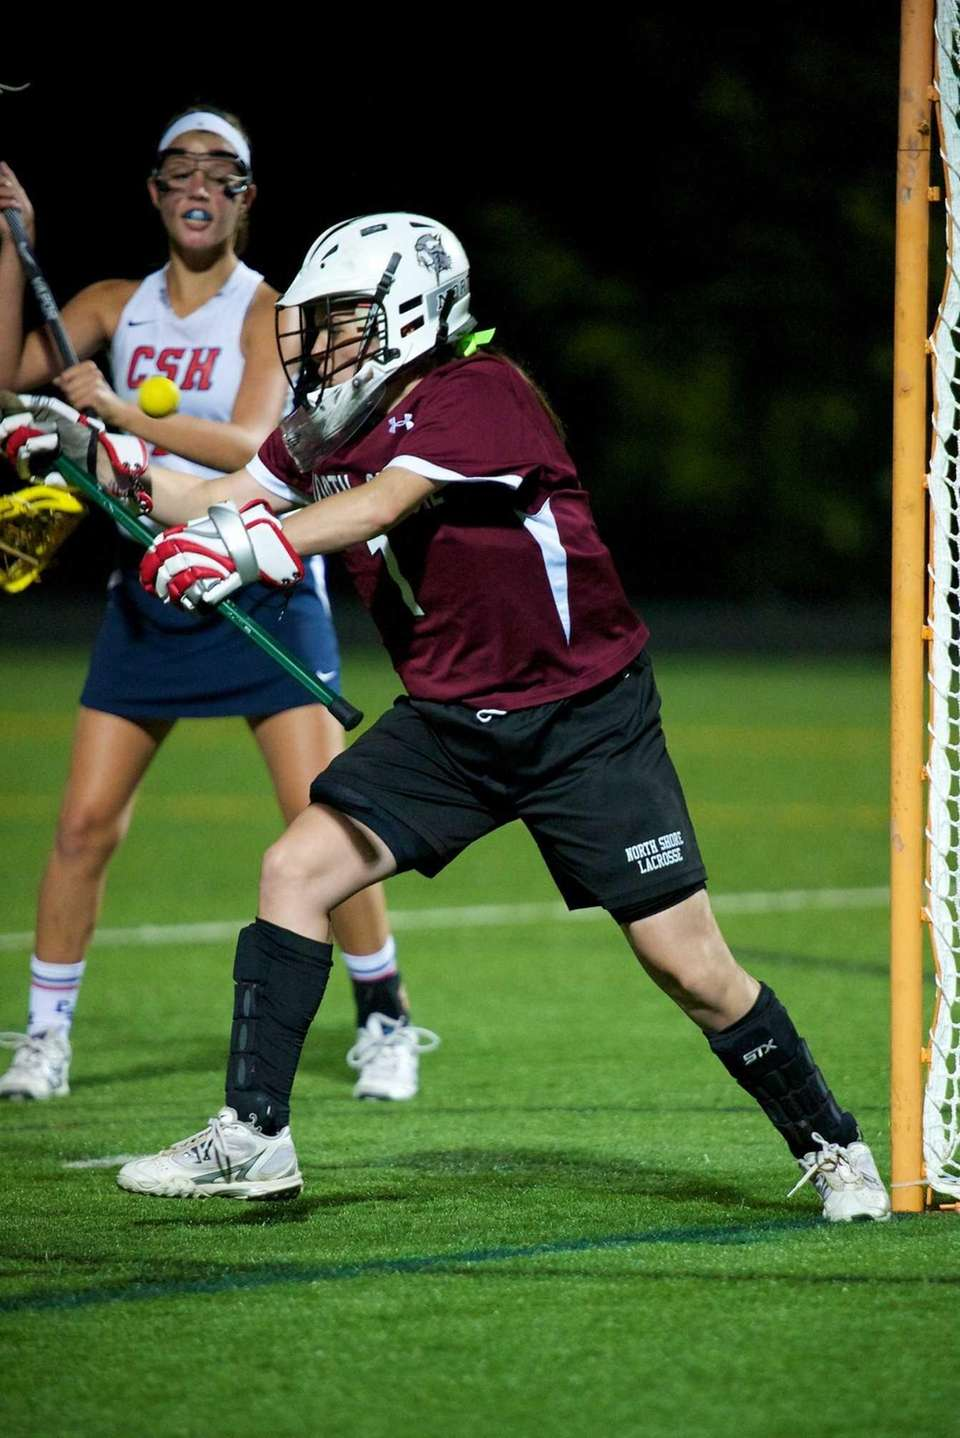 North Shore goalie Alexis Greene stops a shot